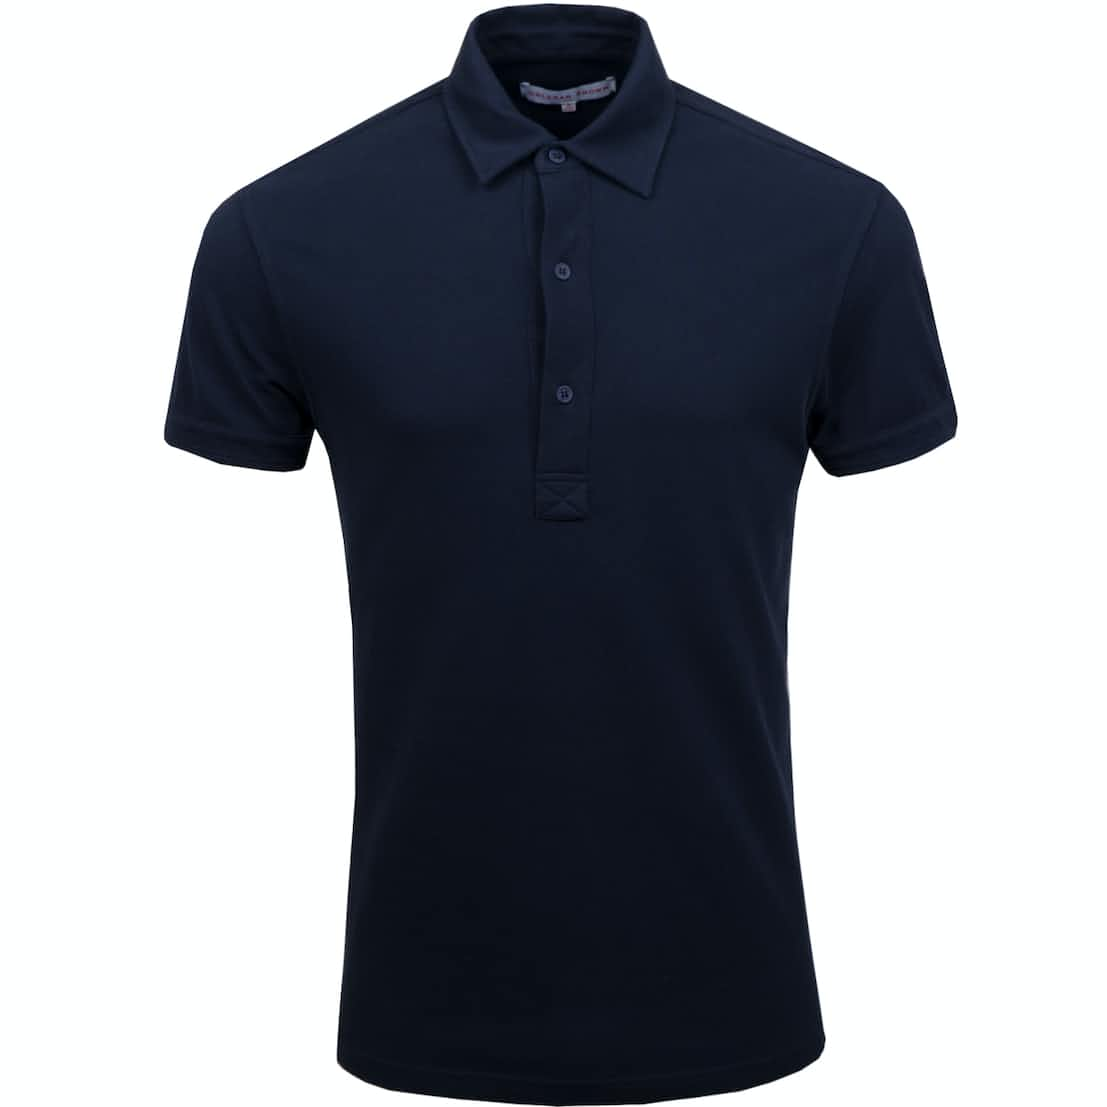 Sebastian Tailored Polo Navy - 2020